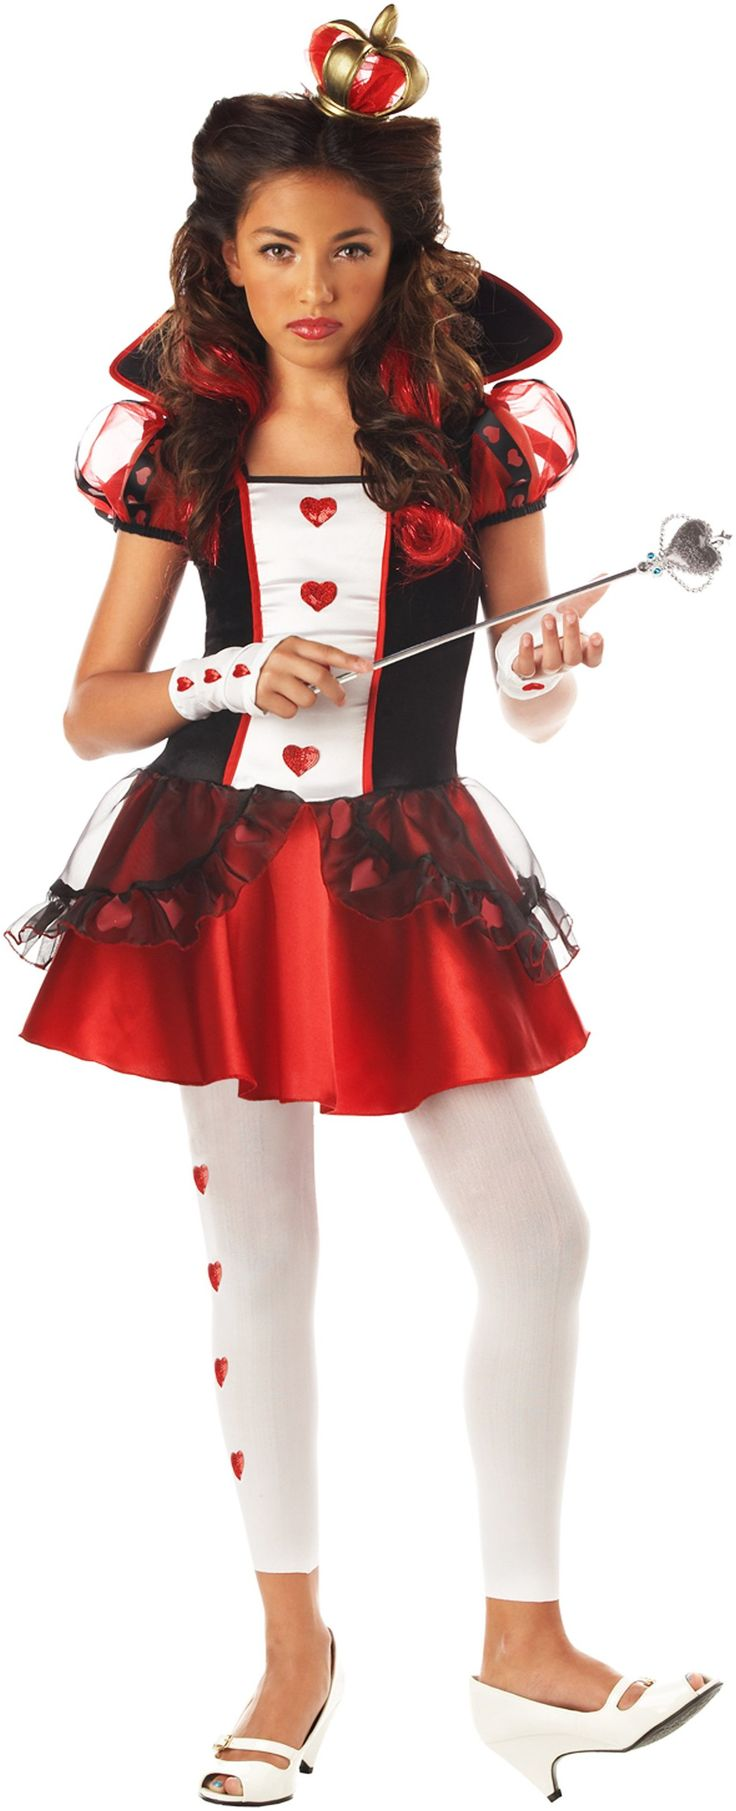 Wonderlands Queen of Hearts Tween Costume from BuyCostumes.com